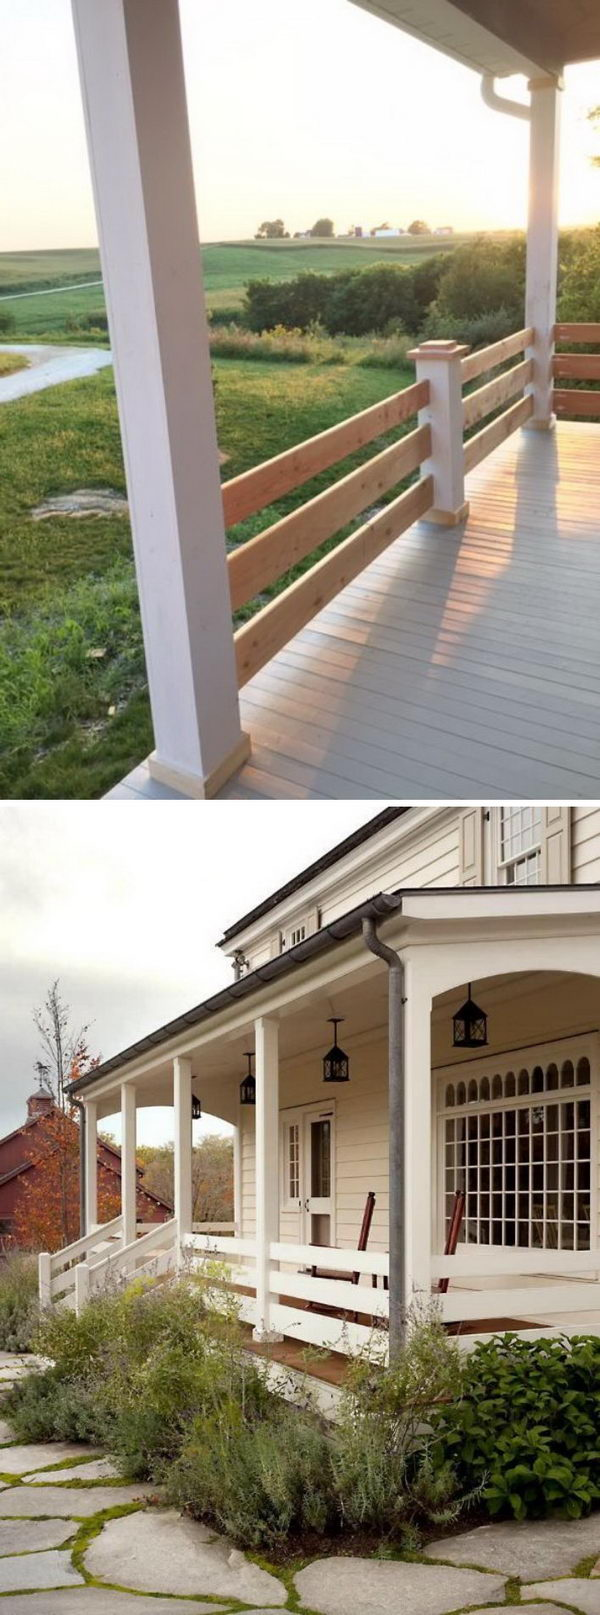 Horizontal Railing On The Porch.